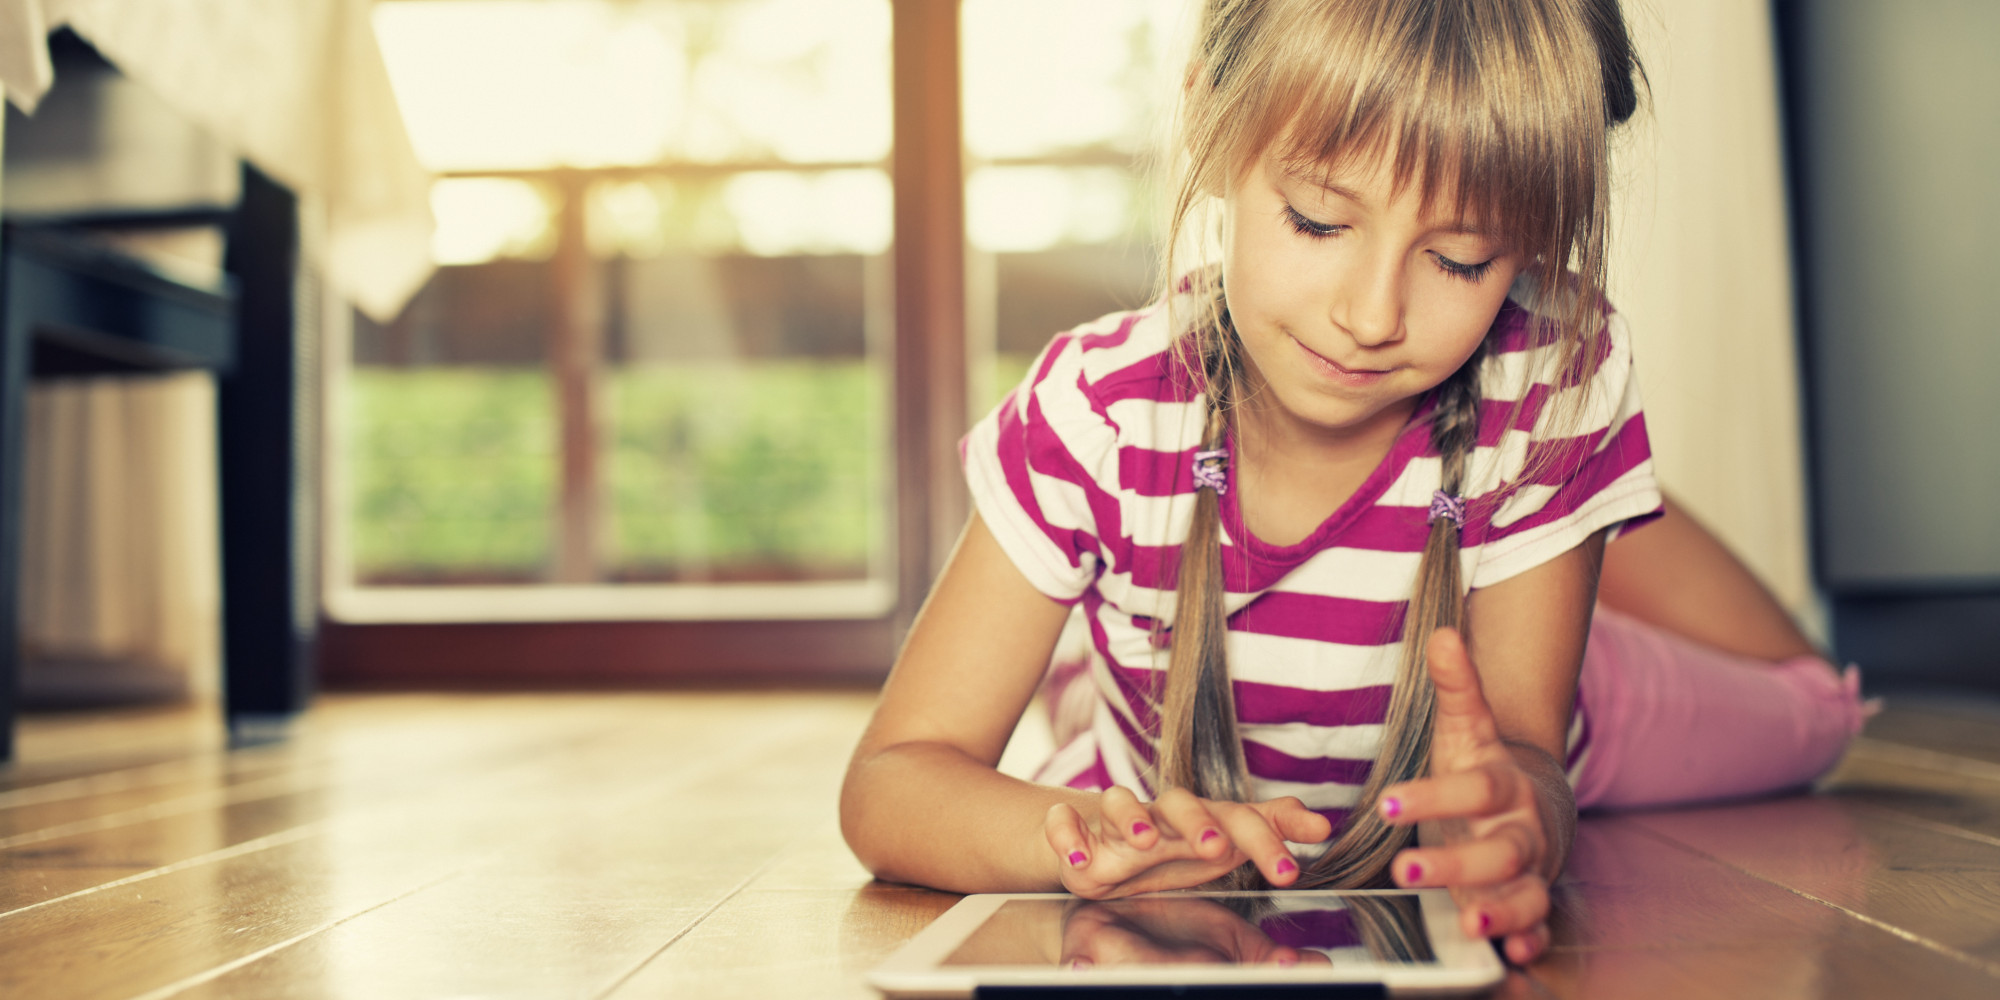 Bullying is a serious problem that impacts the developing mind. Learn the signs of cyberbullying and what you can do to help and educate your child.